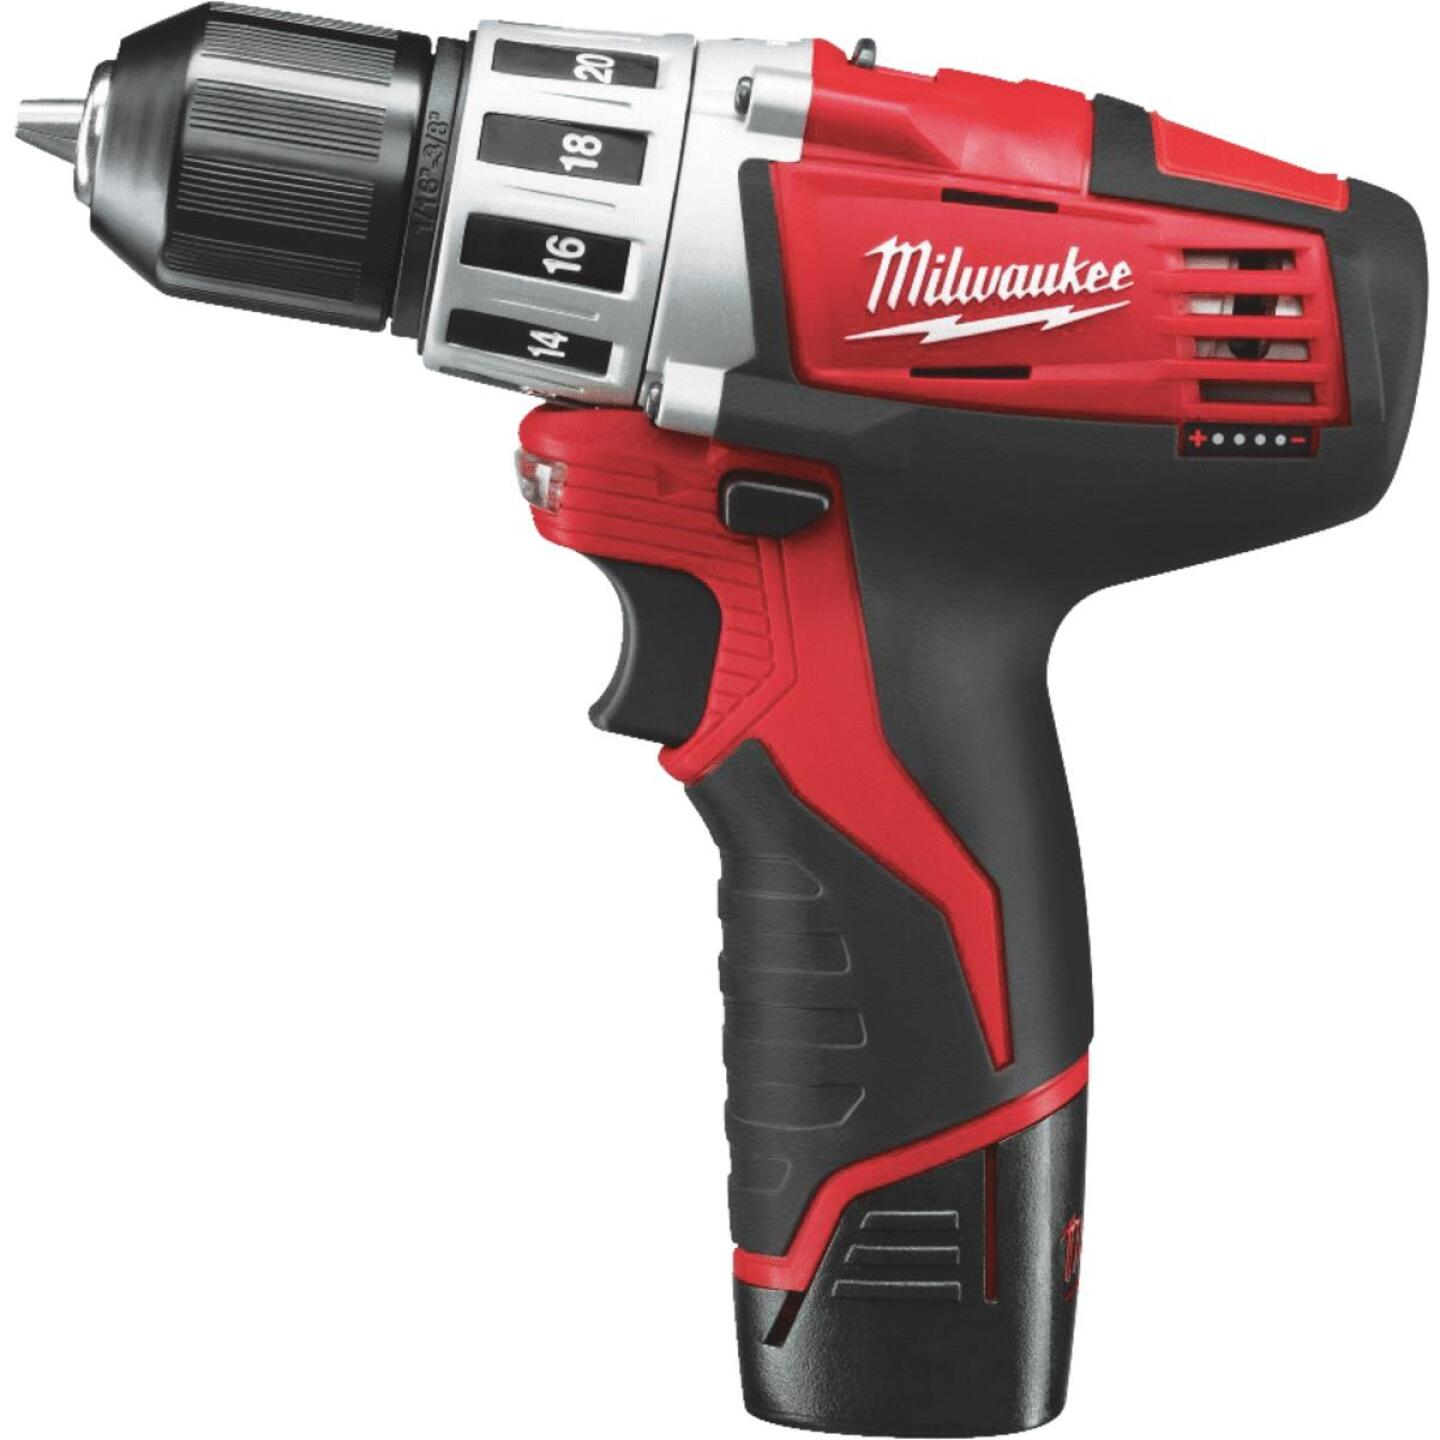 Milwaukee M12 12 Volt Lithium-Ion 3/8 In. Cordless Drill Kit Image 1